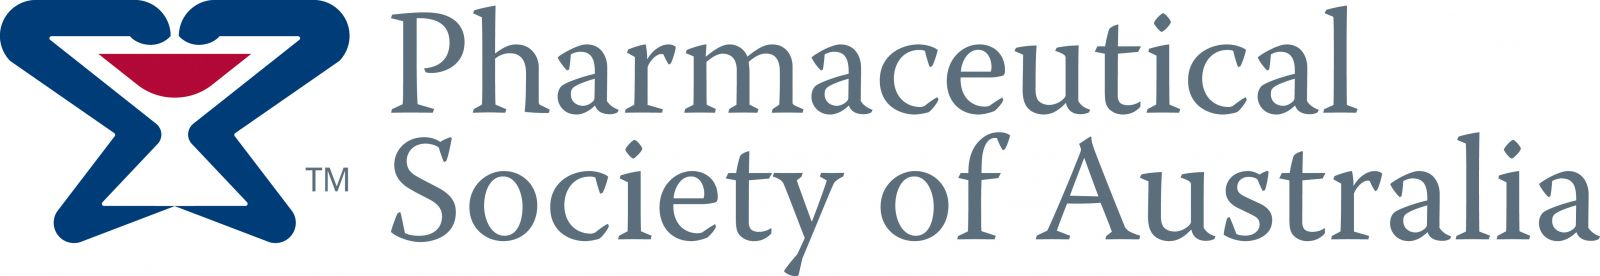 Pharmaceutical Society of Australia logo